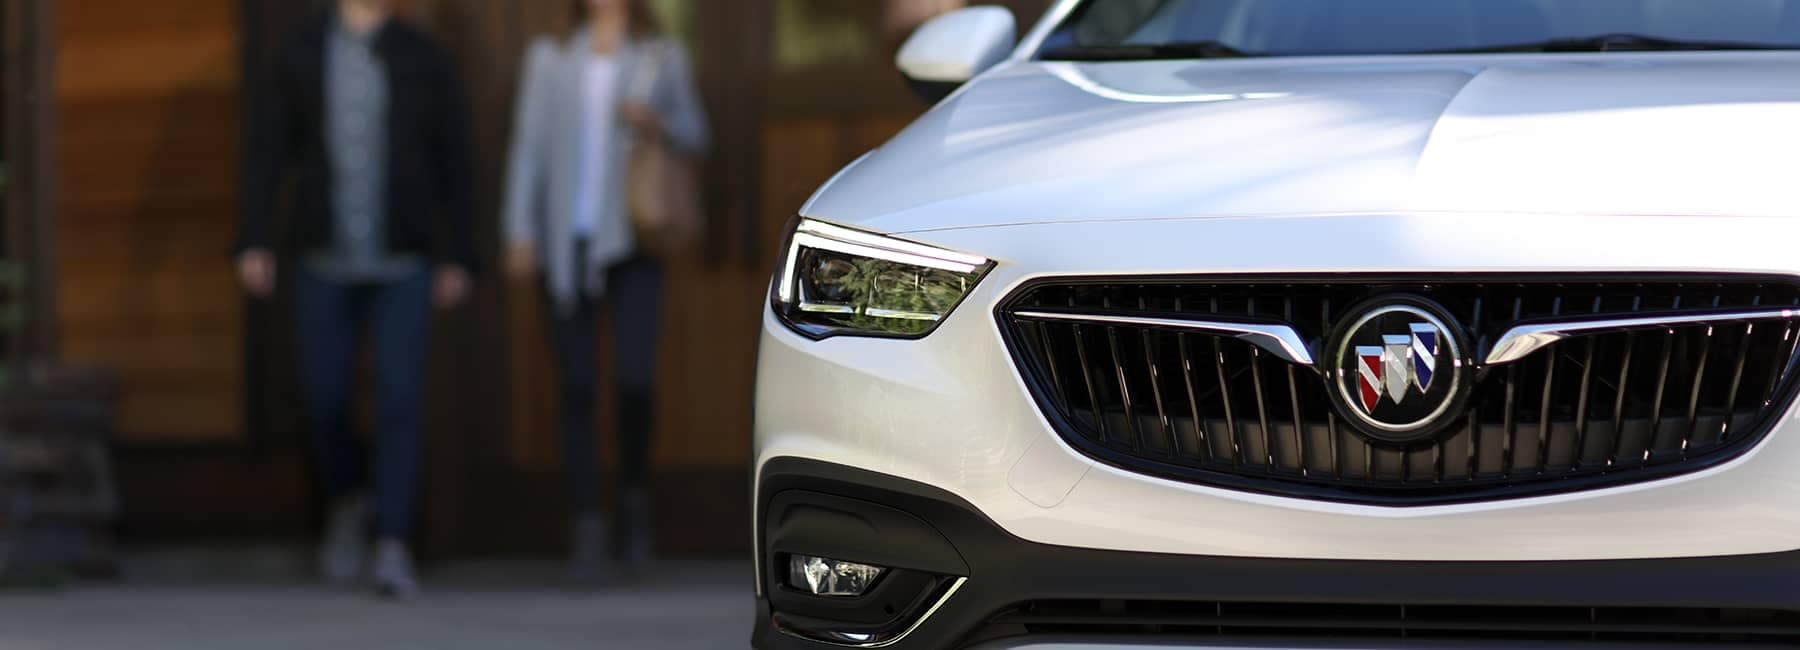 White 2020 Buick Regal TourX